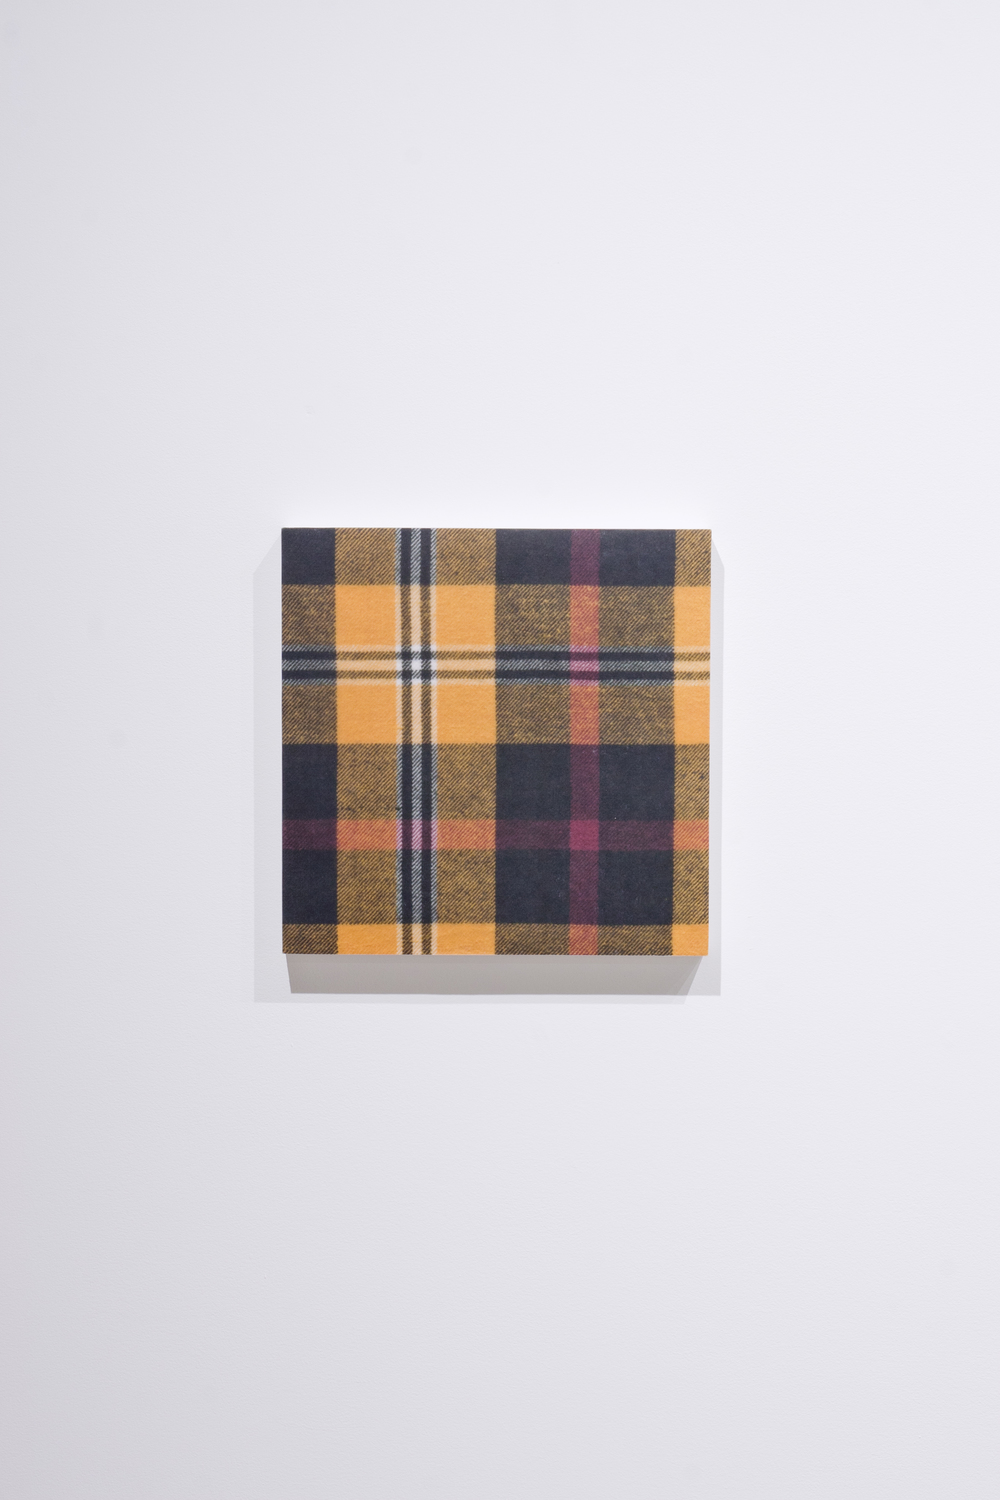 Shirt (Black and Yellow Flannel) , 2015, gel medium transfer on panel, 25.5 x 25.5 cm (10 x 10 in)